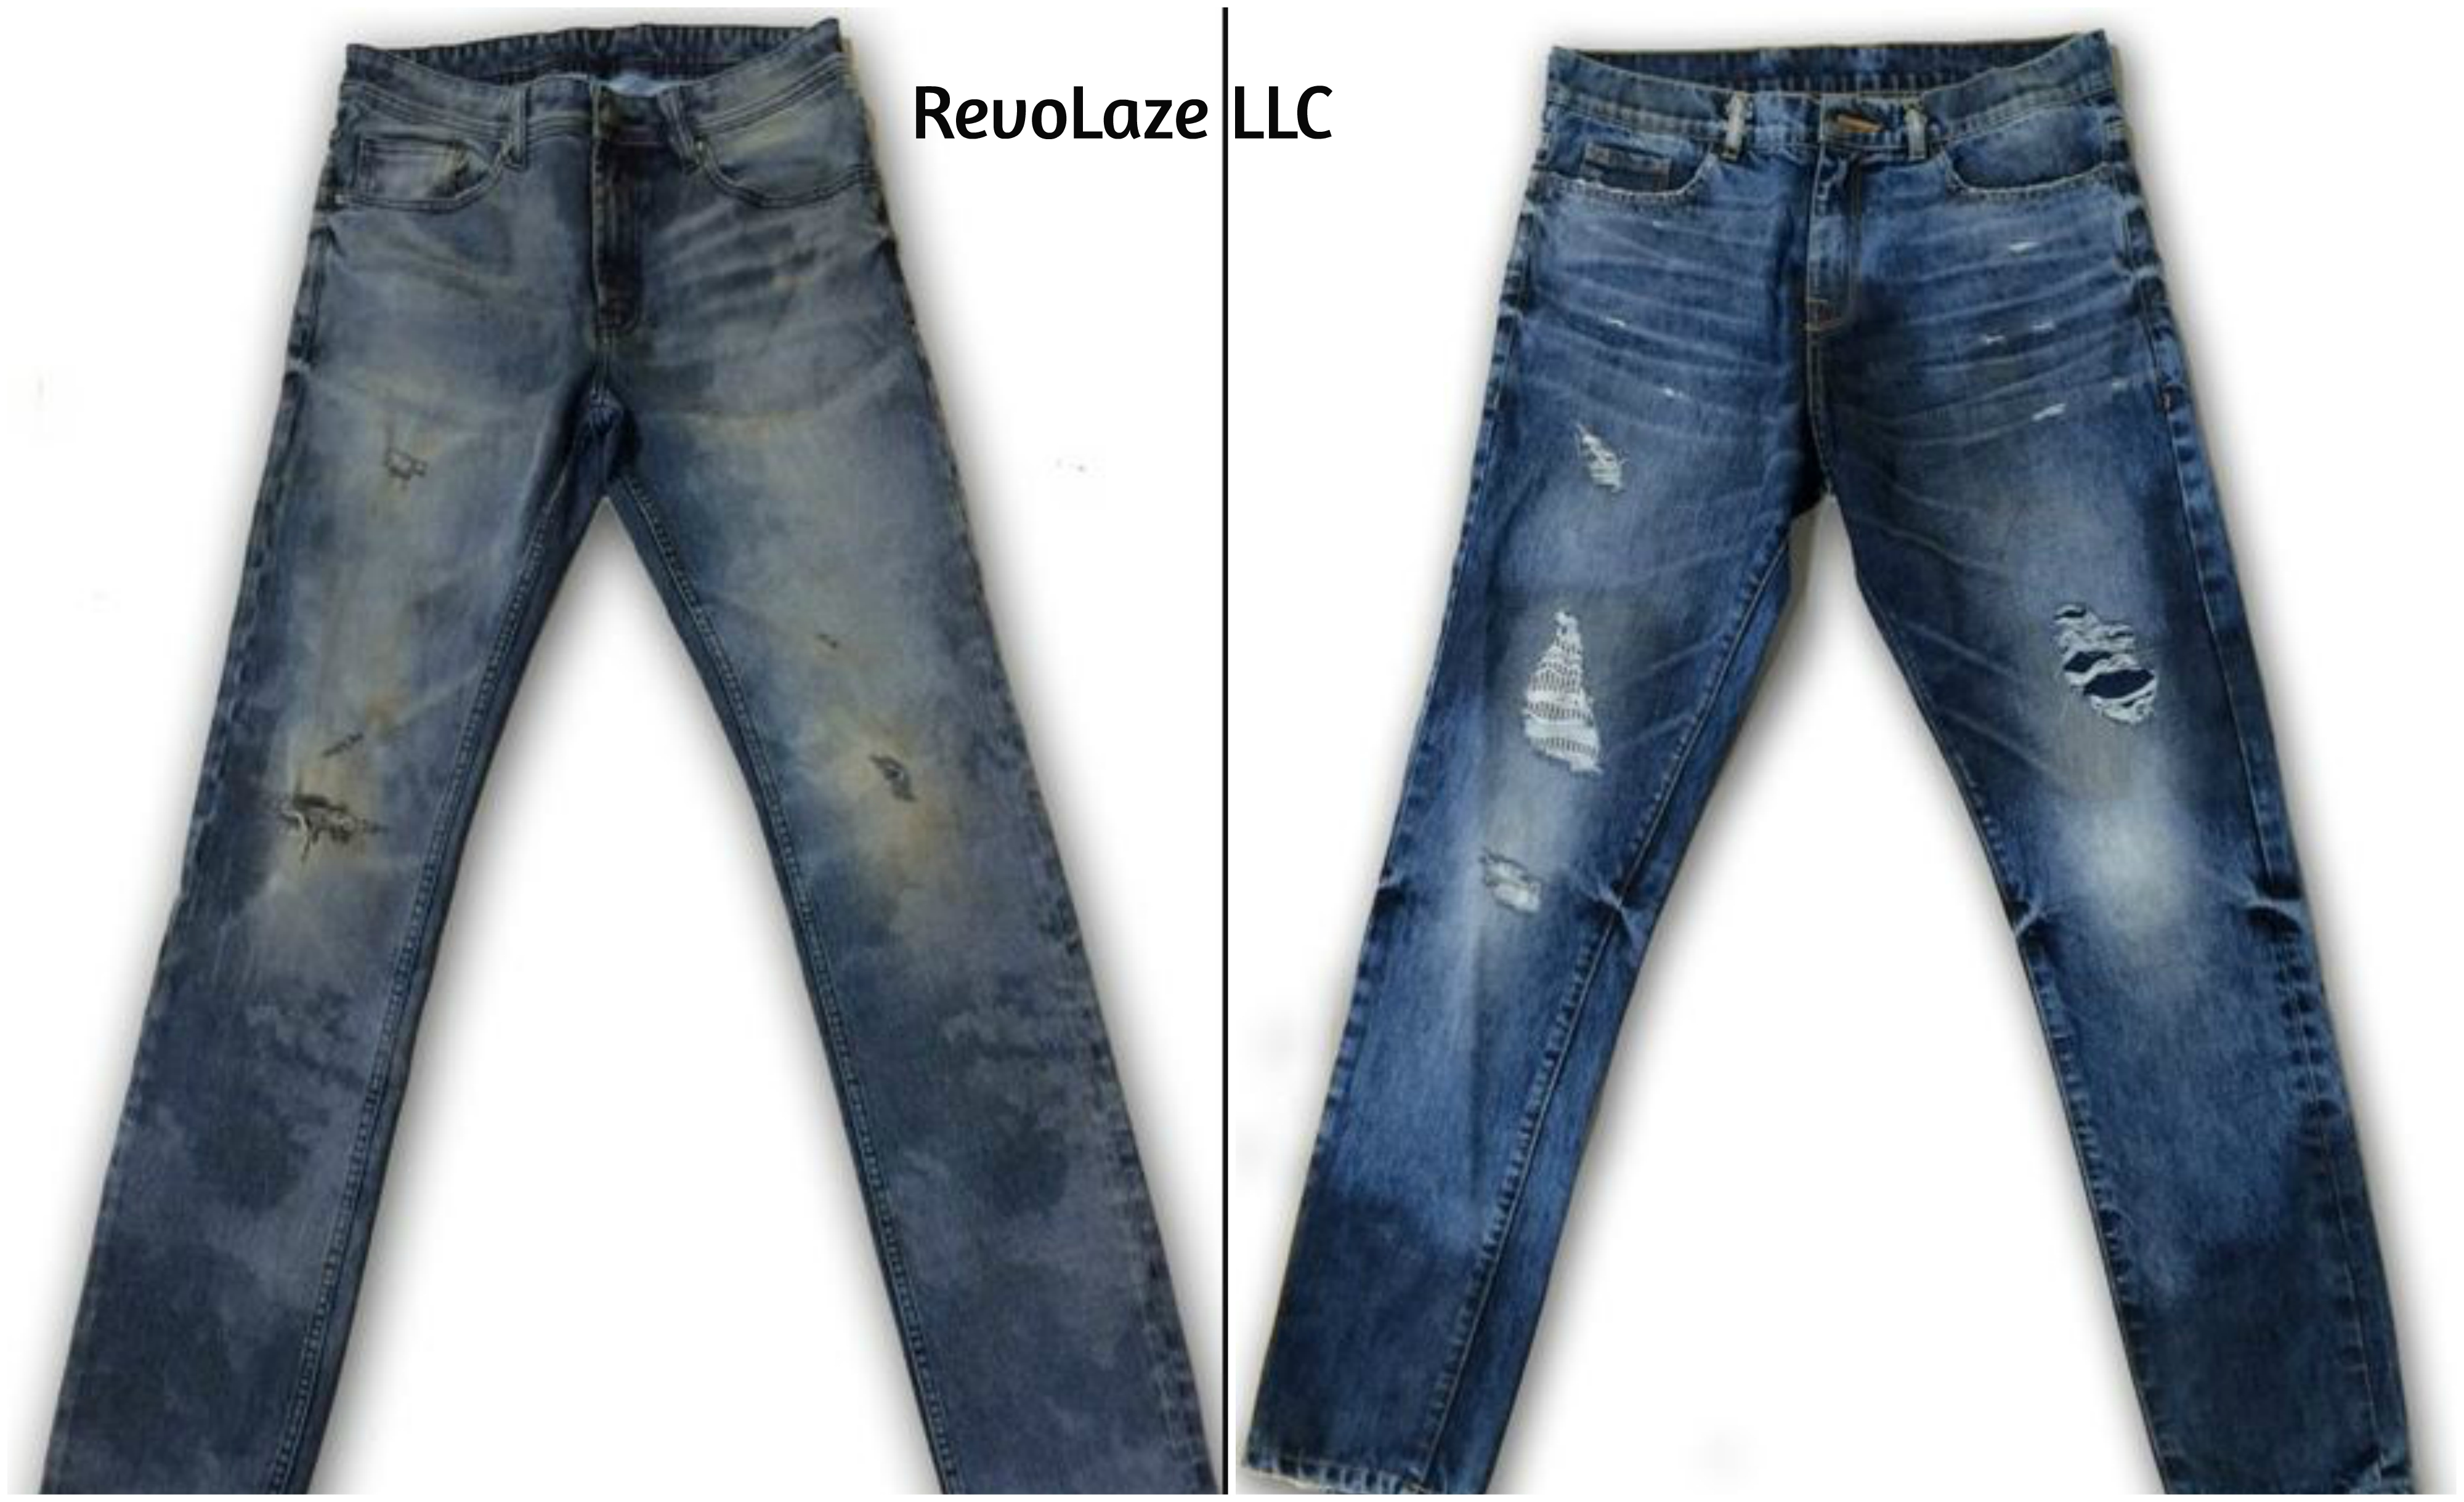 Levi Strauss & Co. Licenses Additional Patents from RevoLaze LLC